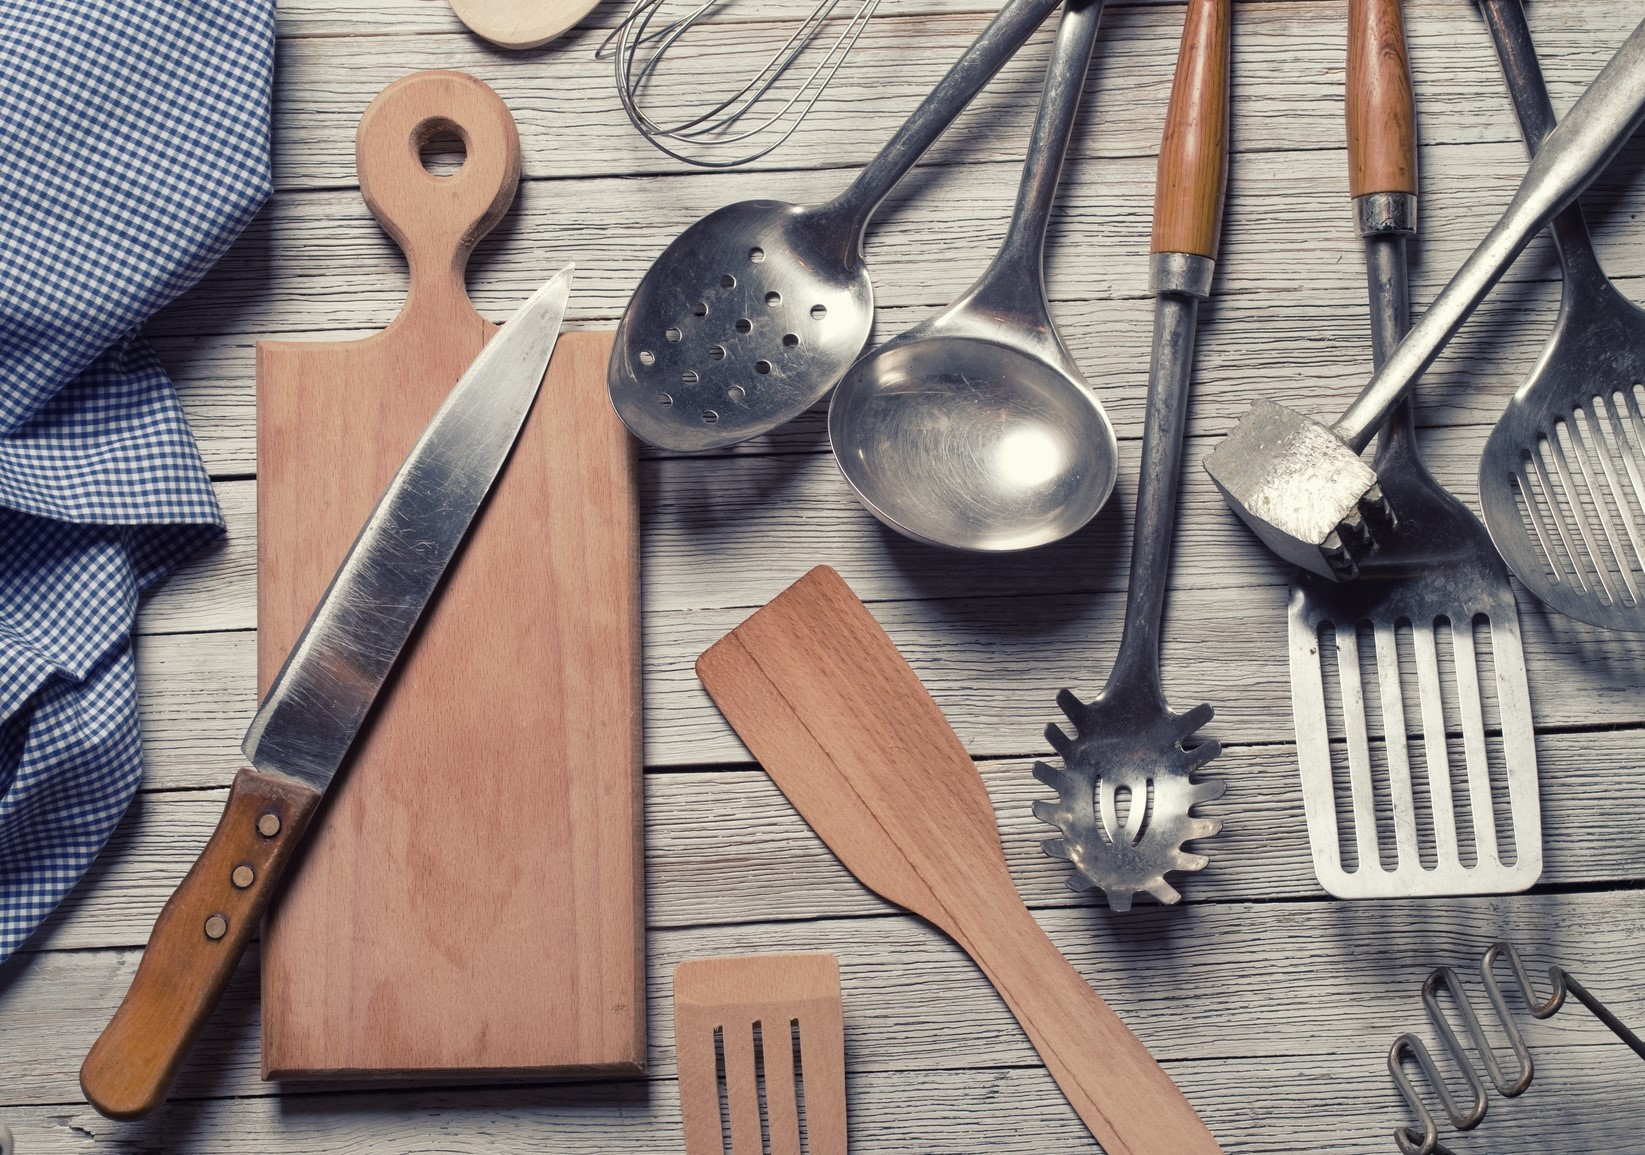 Only The Essentials Most Important Kitchen Tools